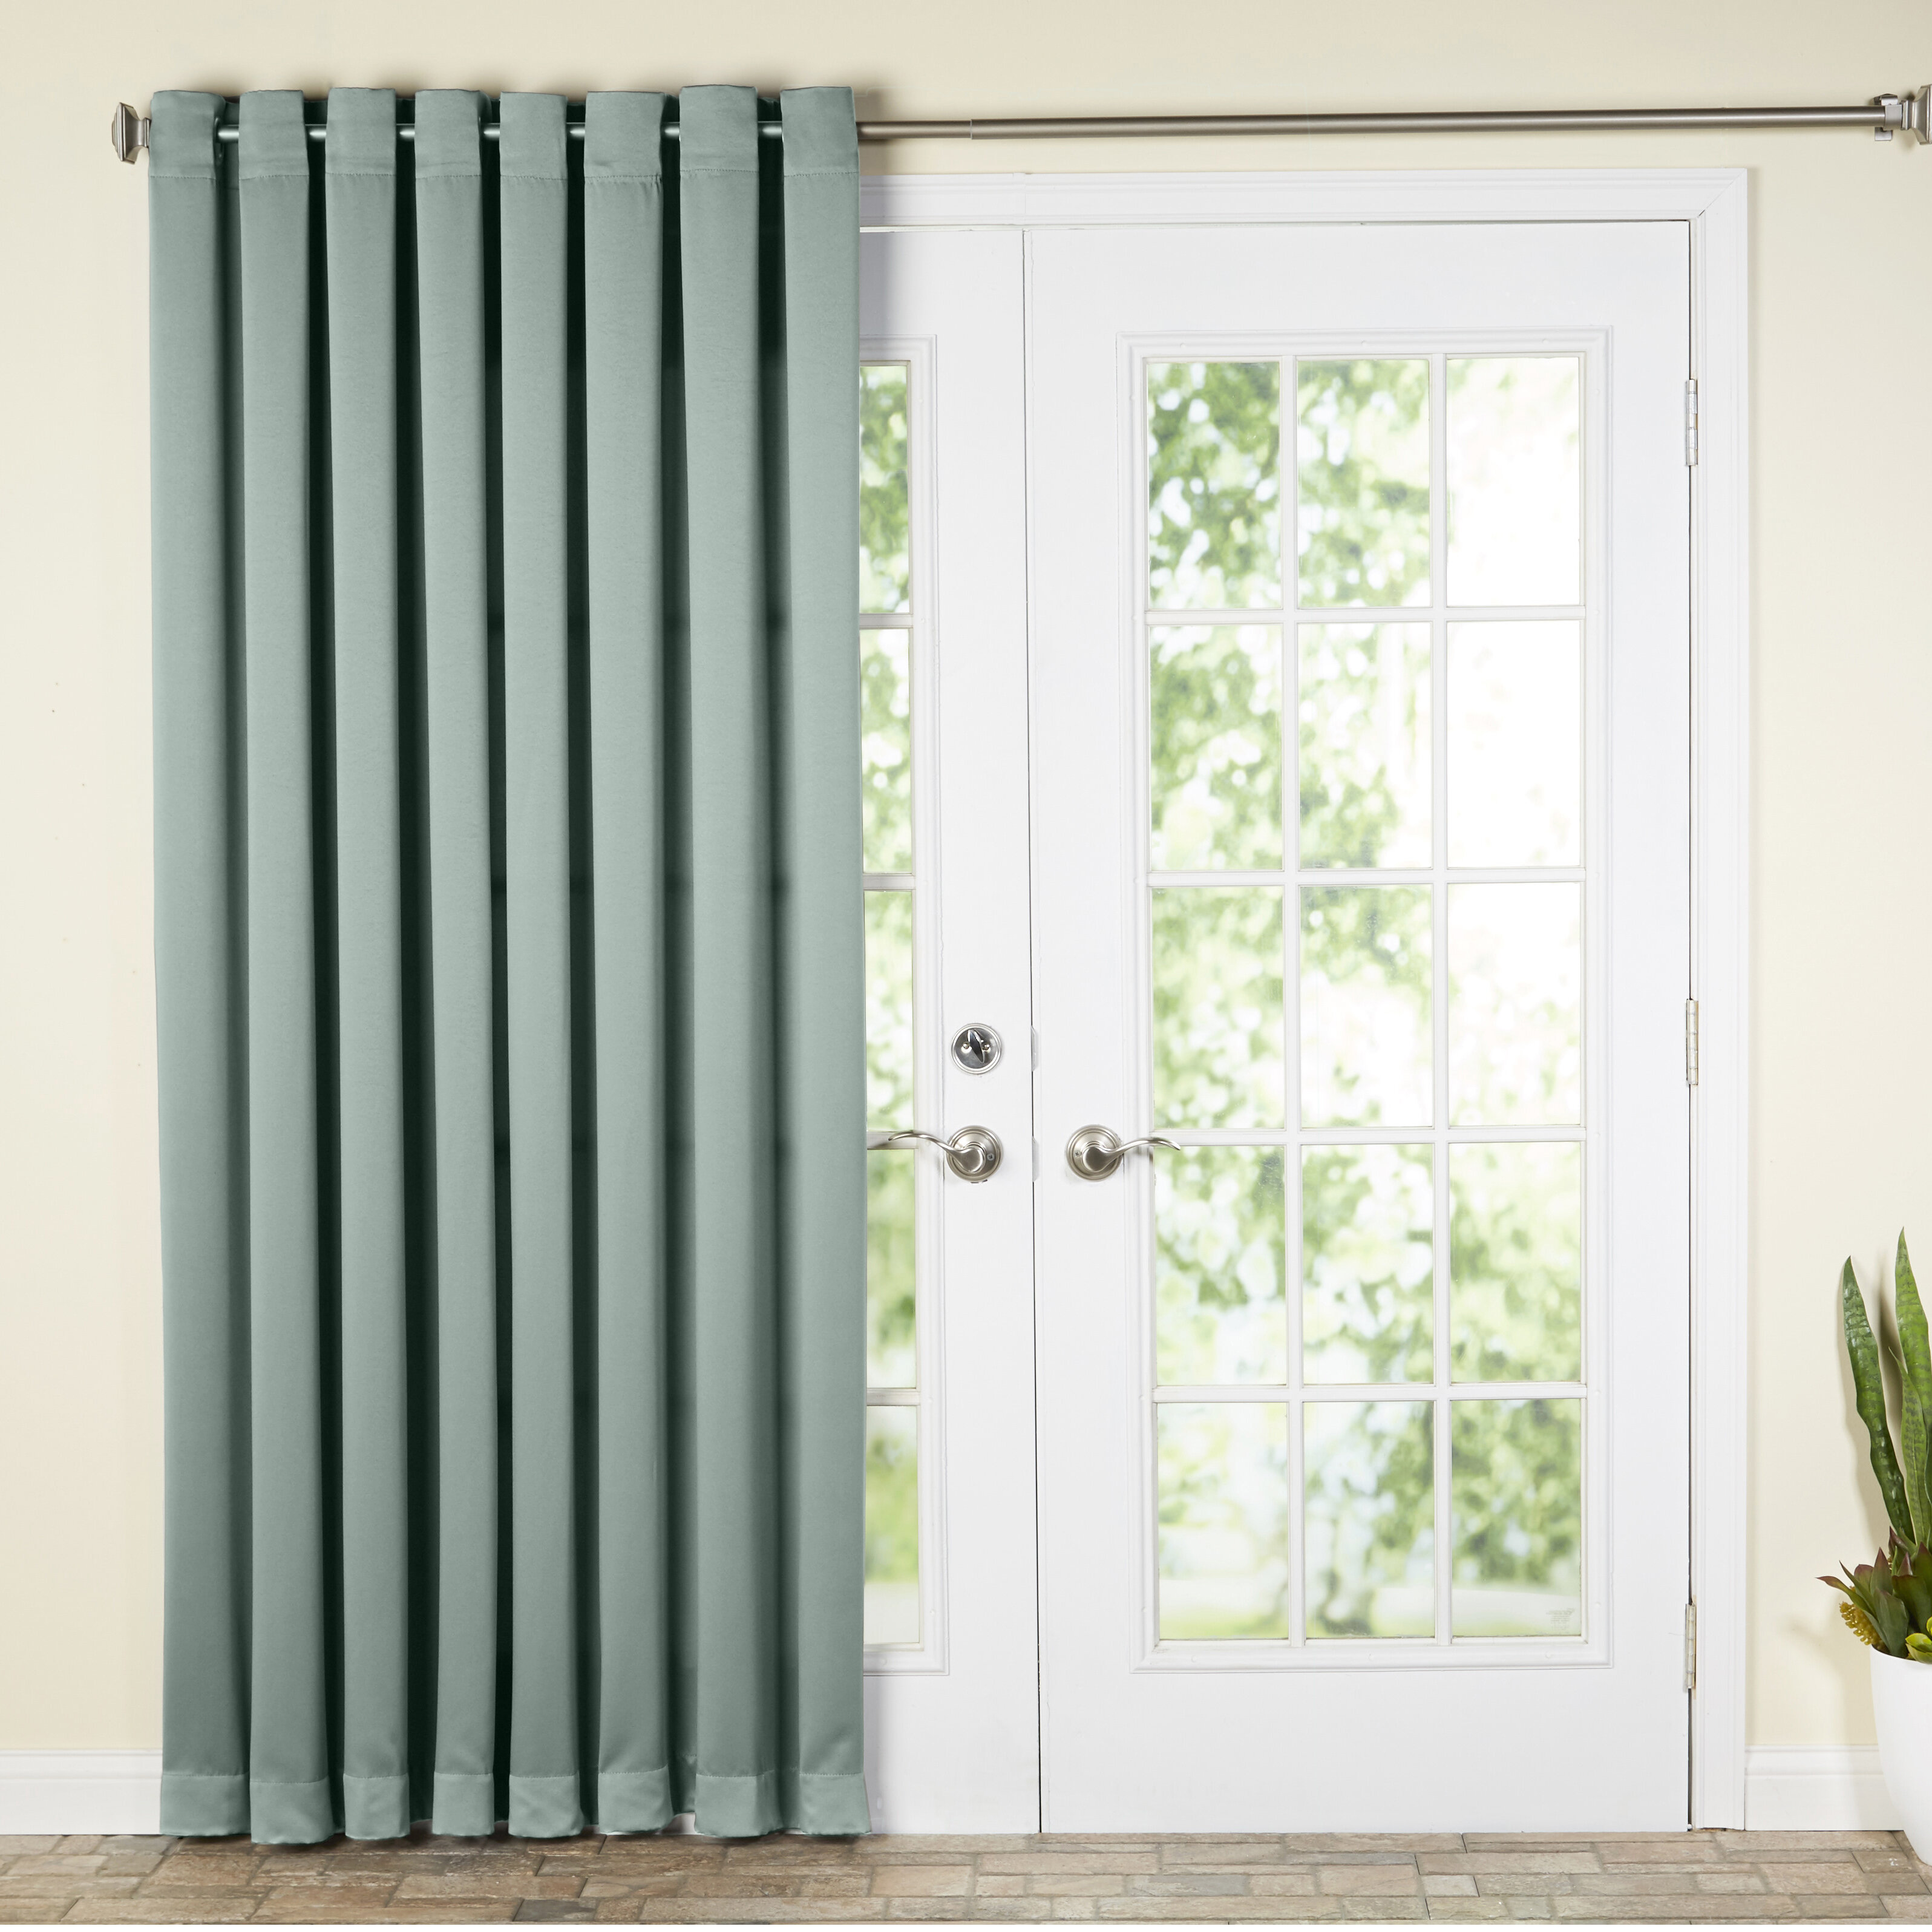 panels curtains velvet inc set of grey grommet pin best drapes by nordstrom with rack grommets reverse fashion moroccan printed home on